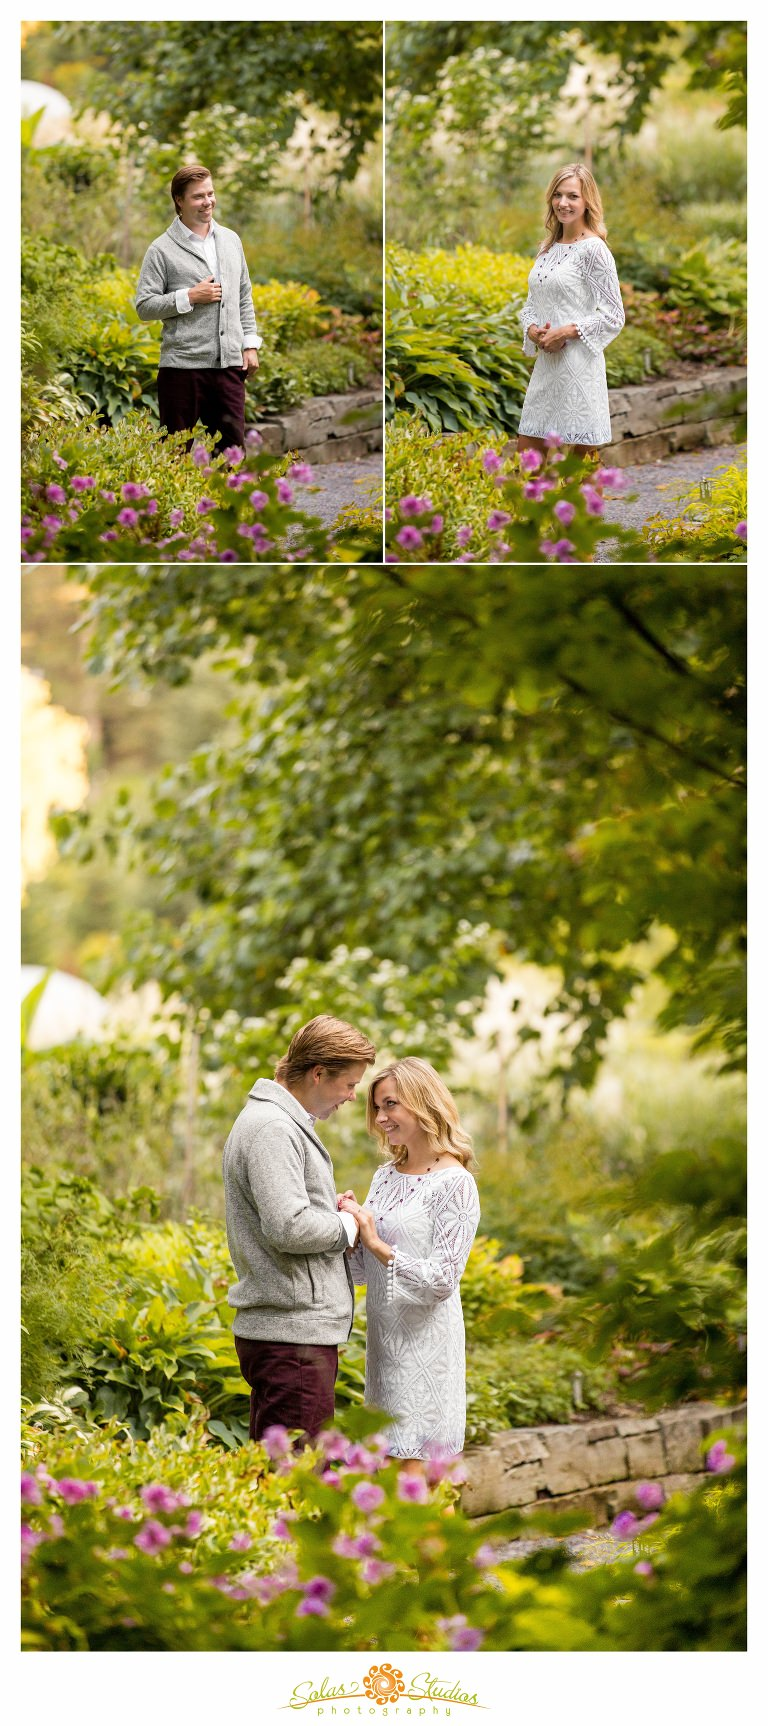 Solas-Studios-Engagement-Session-Ithaca-NY-4